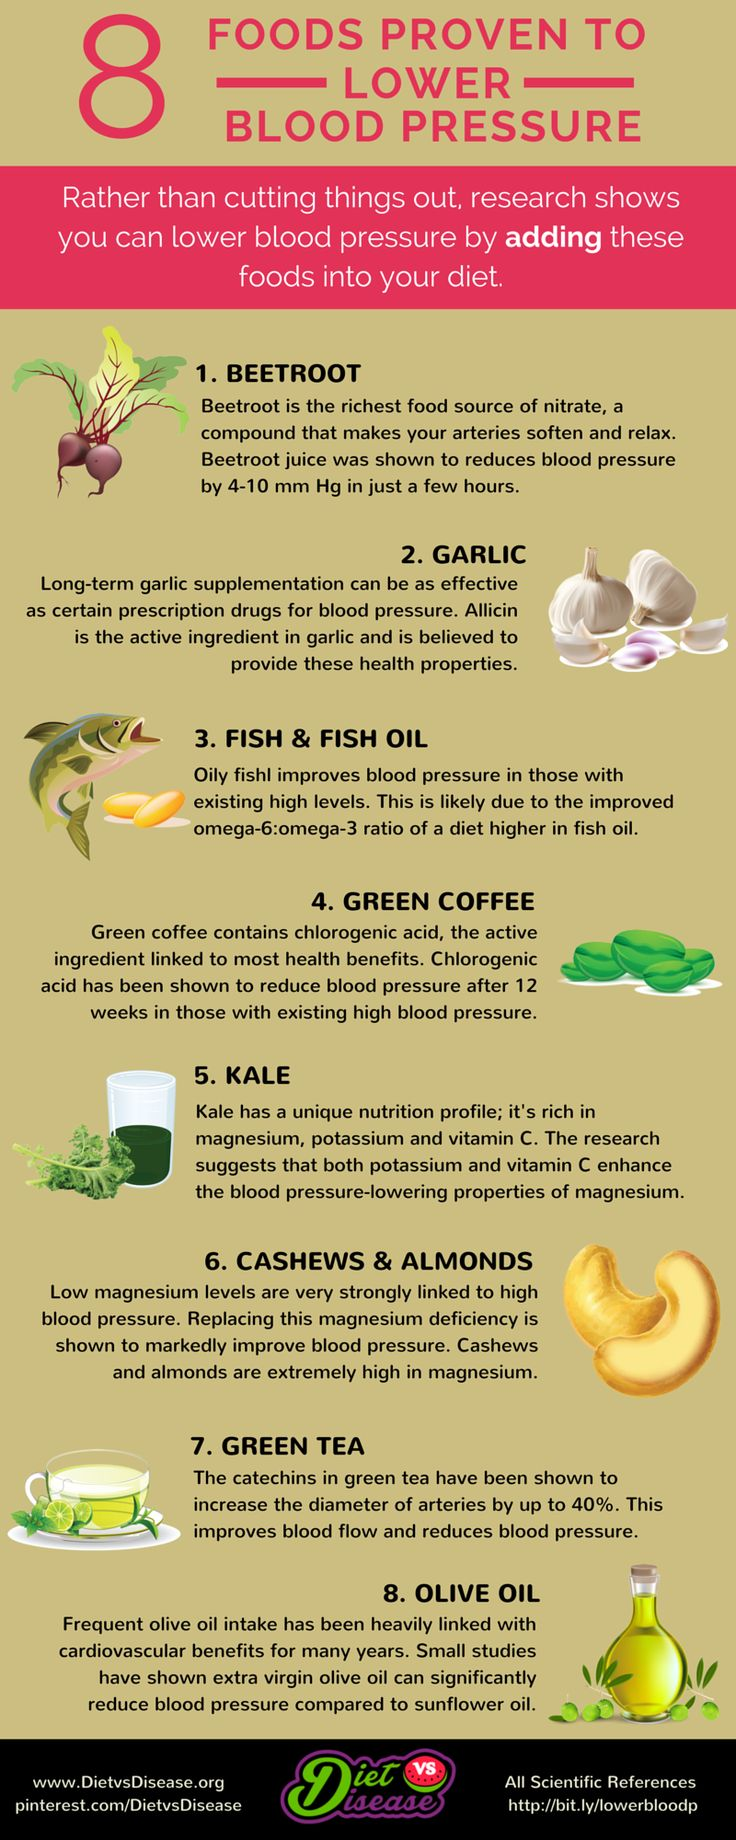 8-foods-to-lower-blood-pressure-infographic-1.png 800×2,000 píxeles